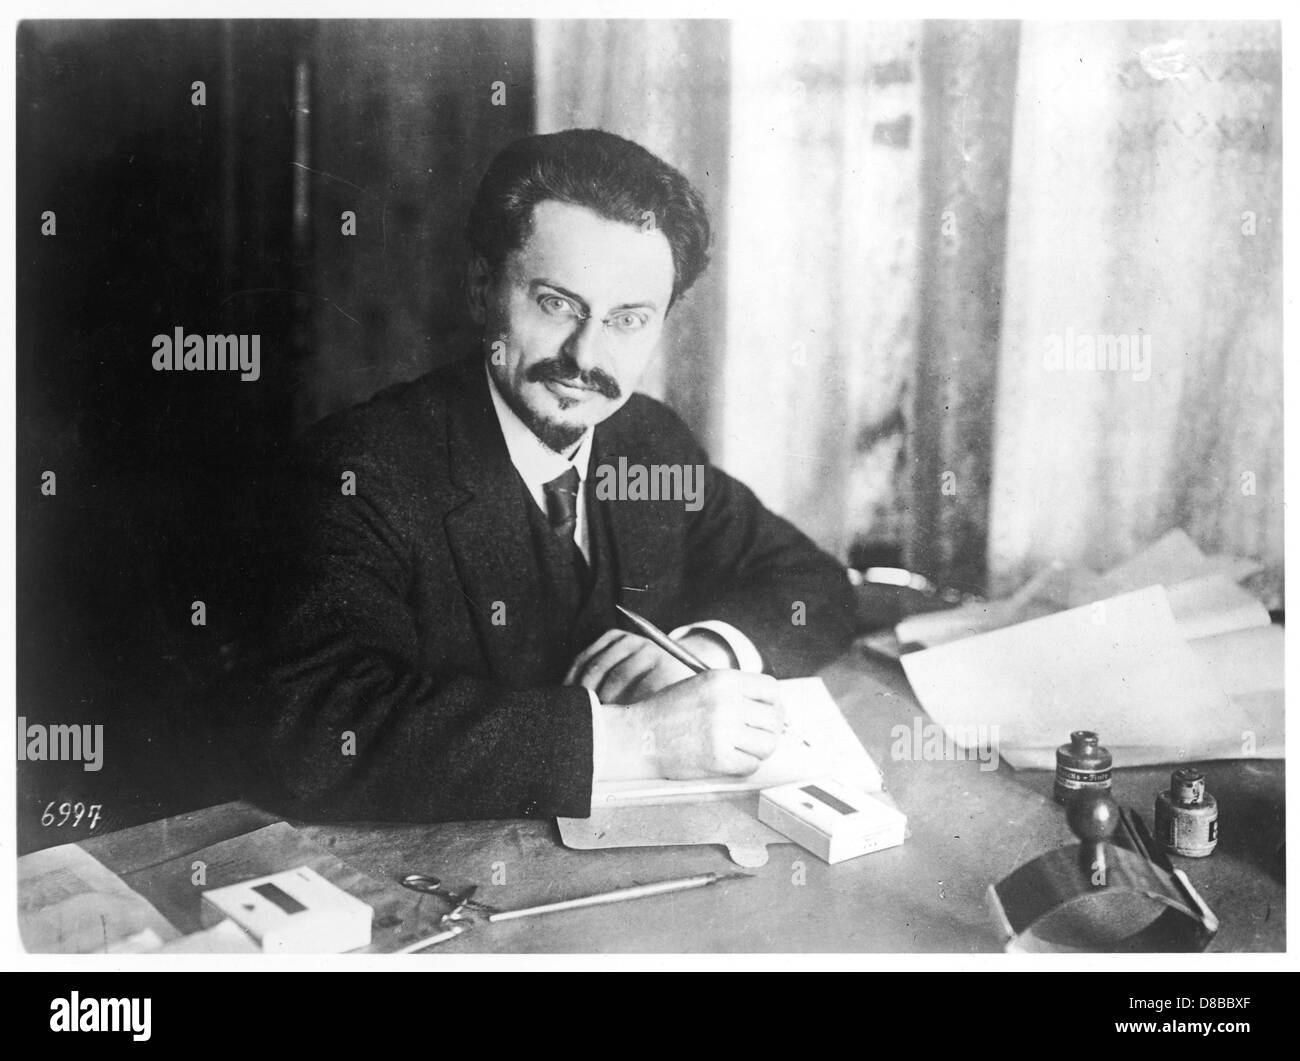 Trotsky At Desk - Stock Image